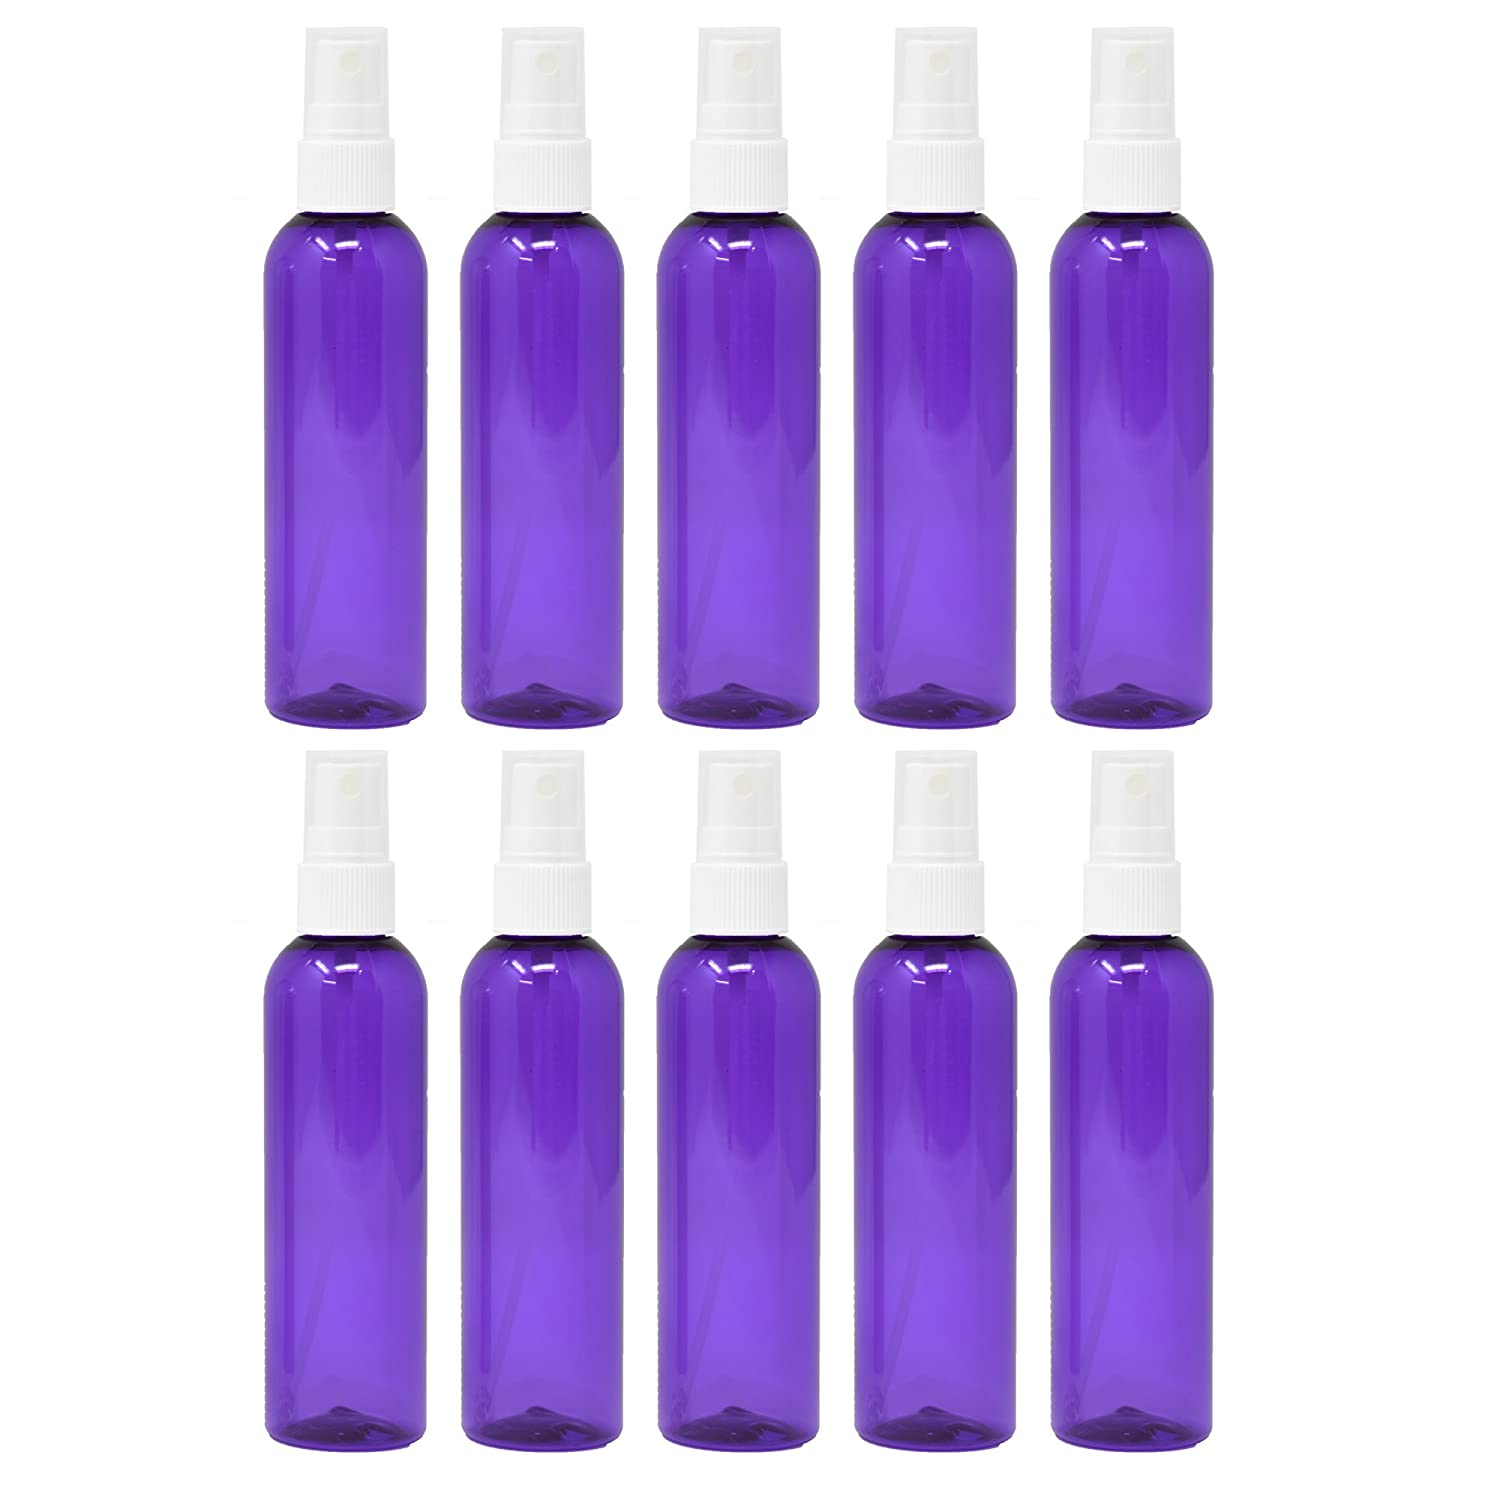 Plastic Spray Bottles Empty 4 oz 10 Pack with Fine Mist Sprayers PET BPA Free Materials Great for Essential Oil Sprays